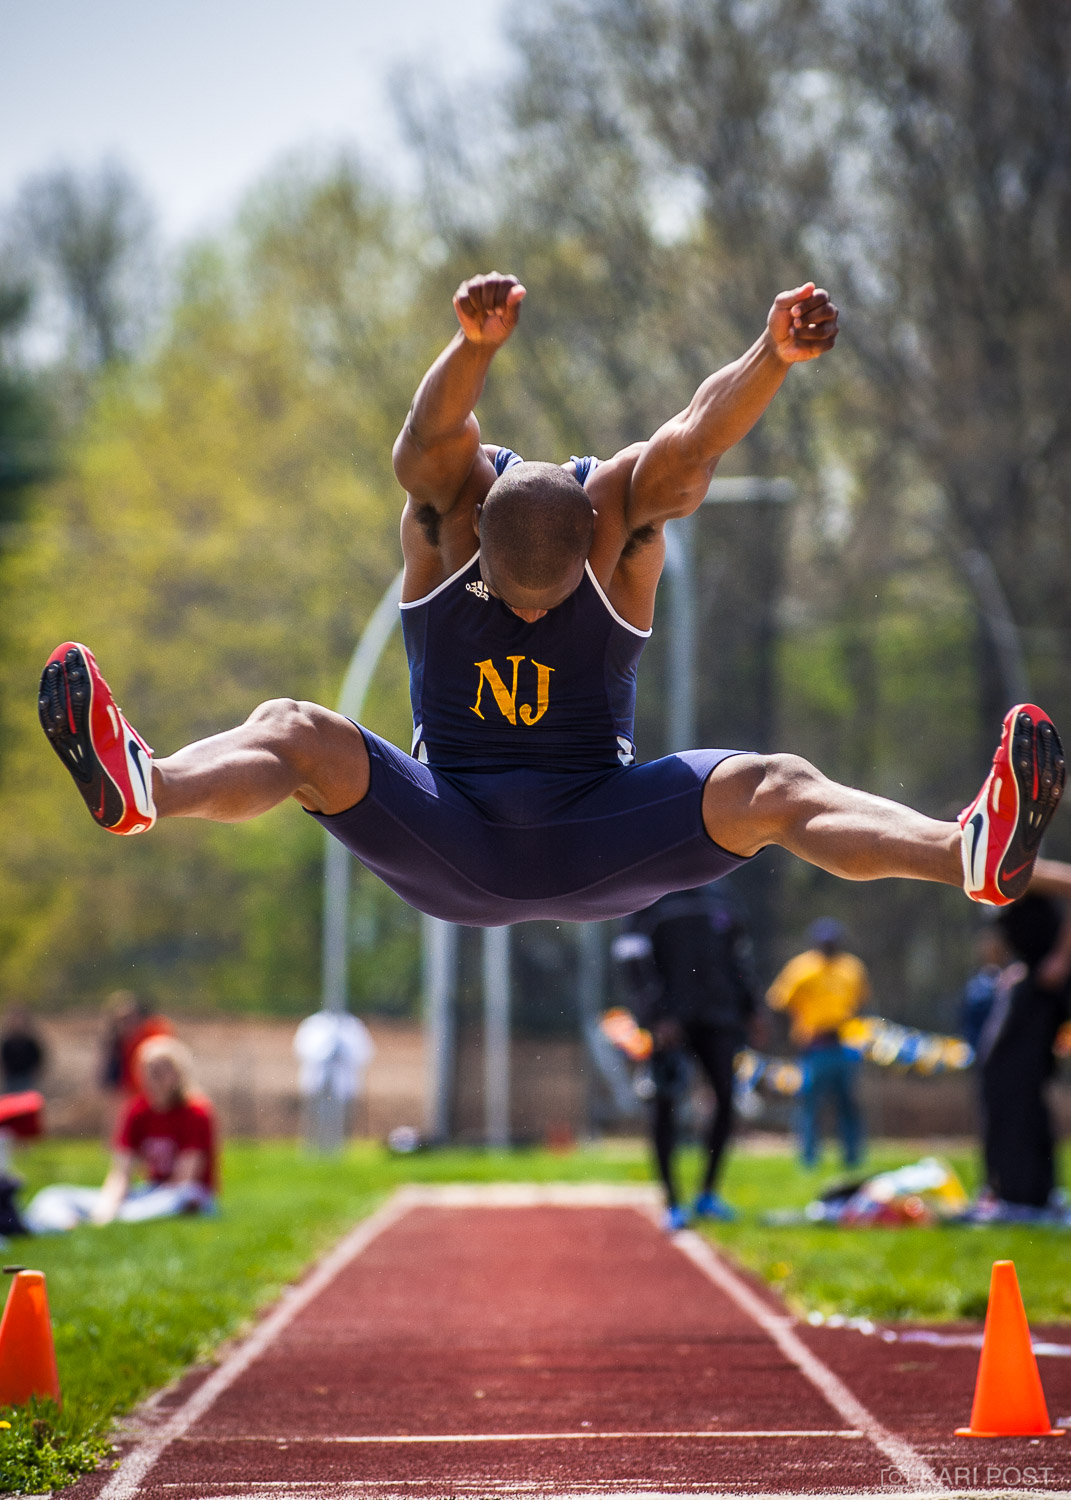 Kevin Jones, TCNJ, TCNJ Lions, The College of New Jersey, athletics, college, sports, track, track and field, photo